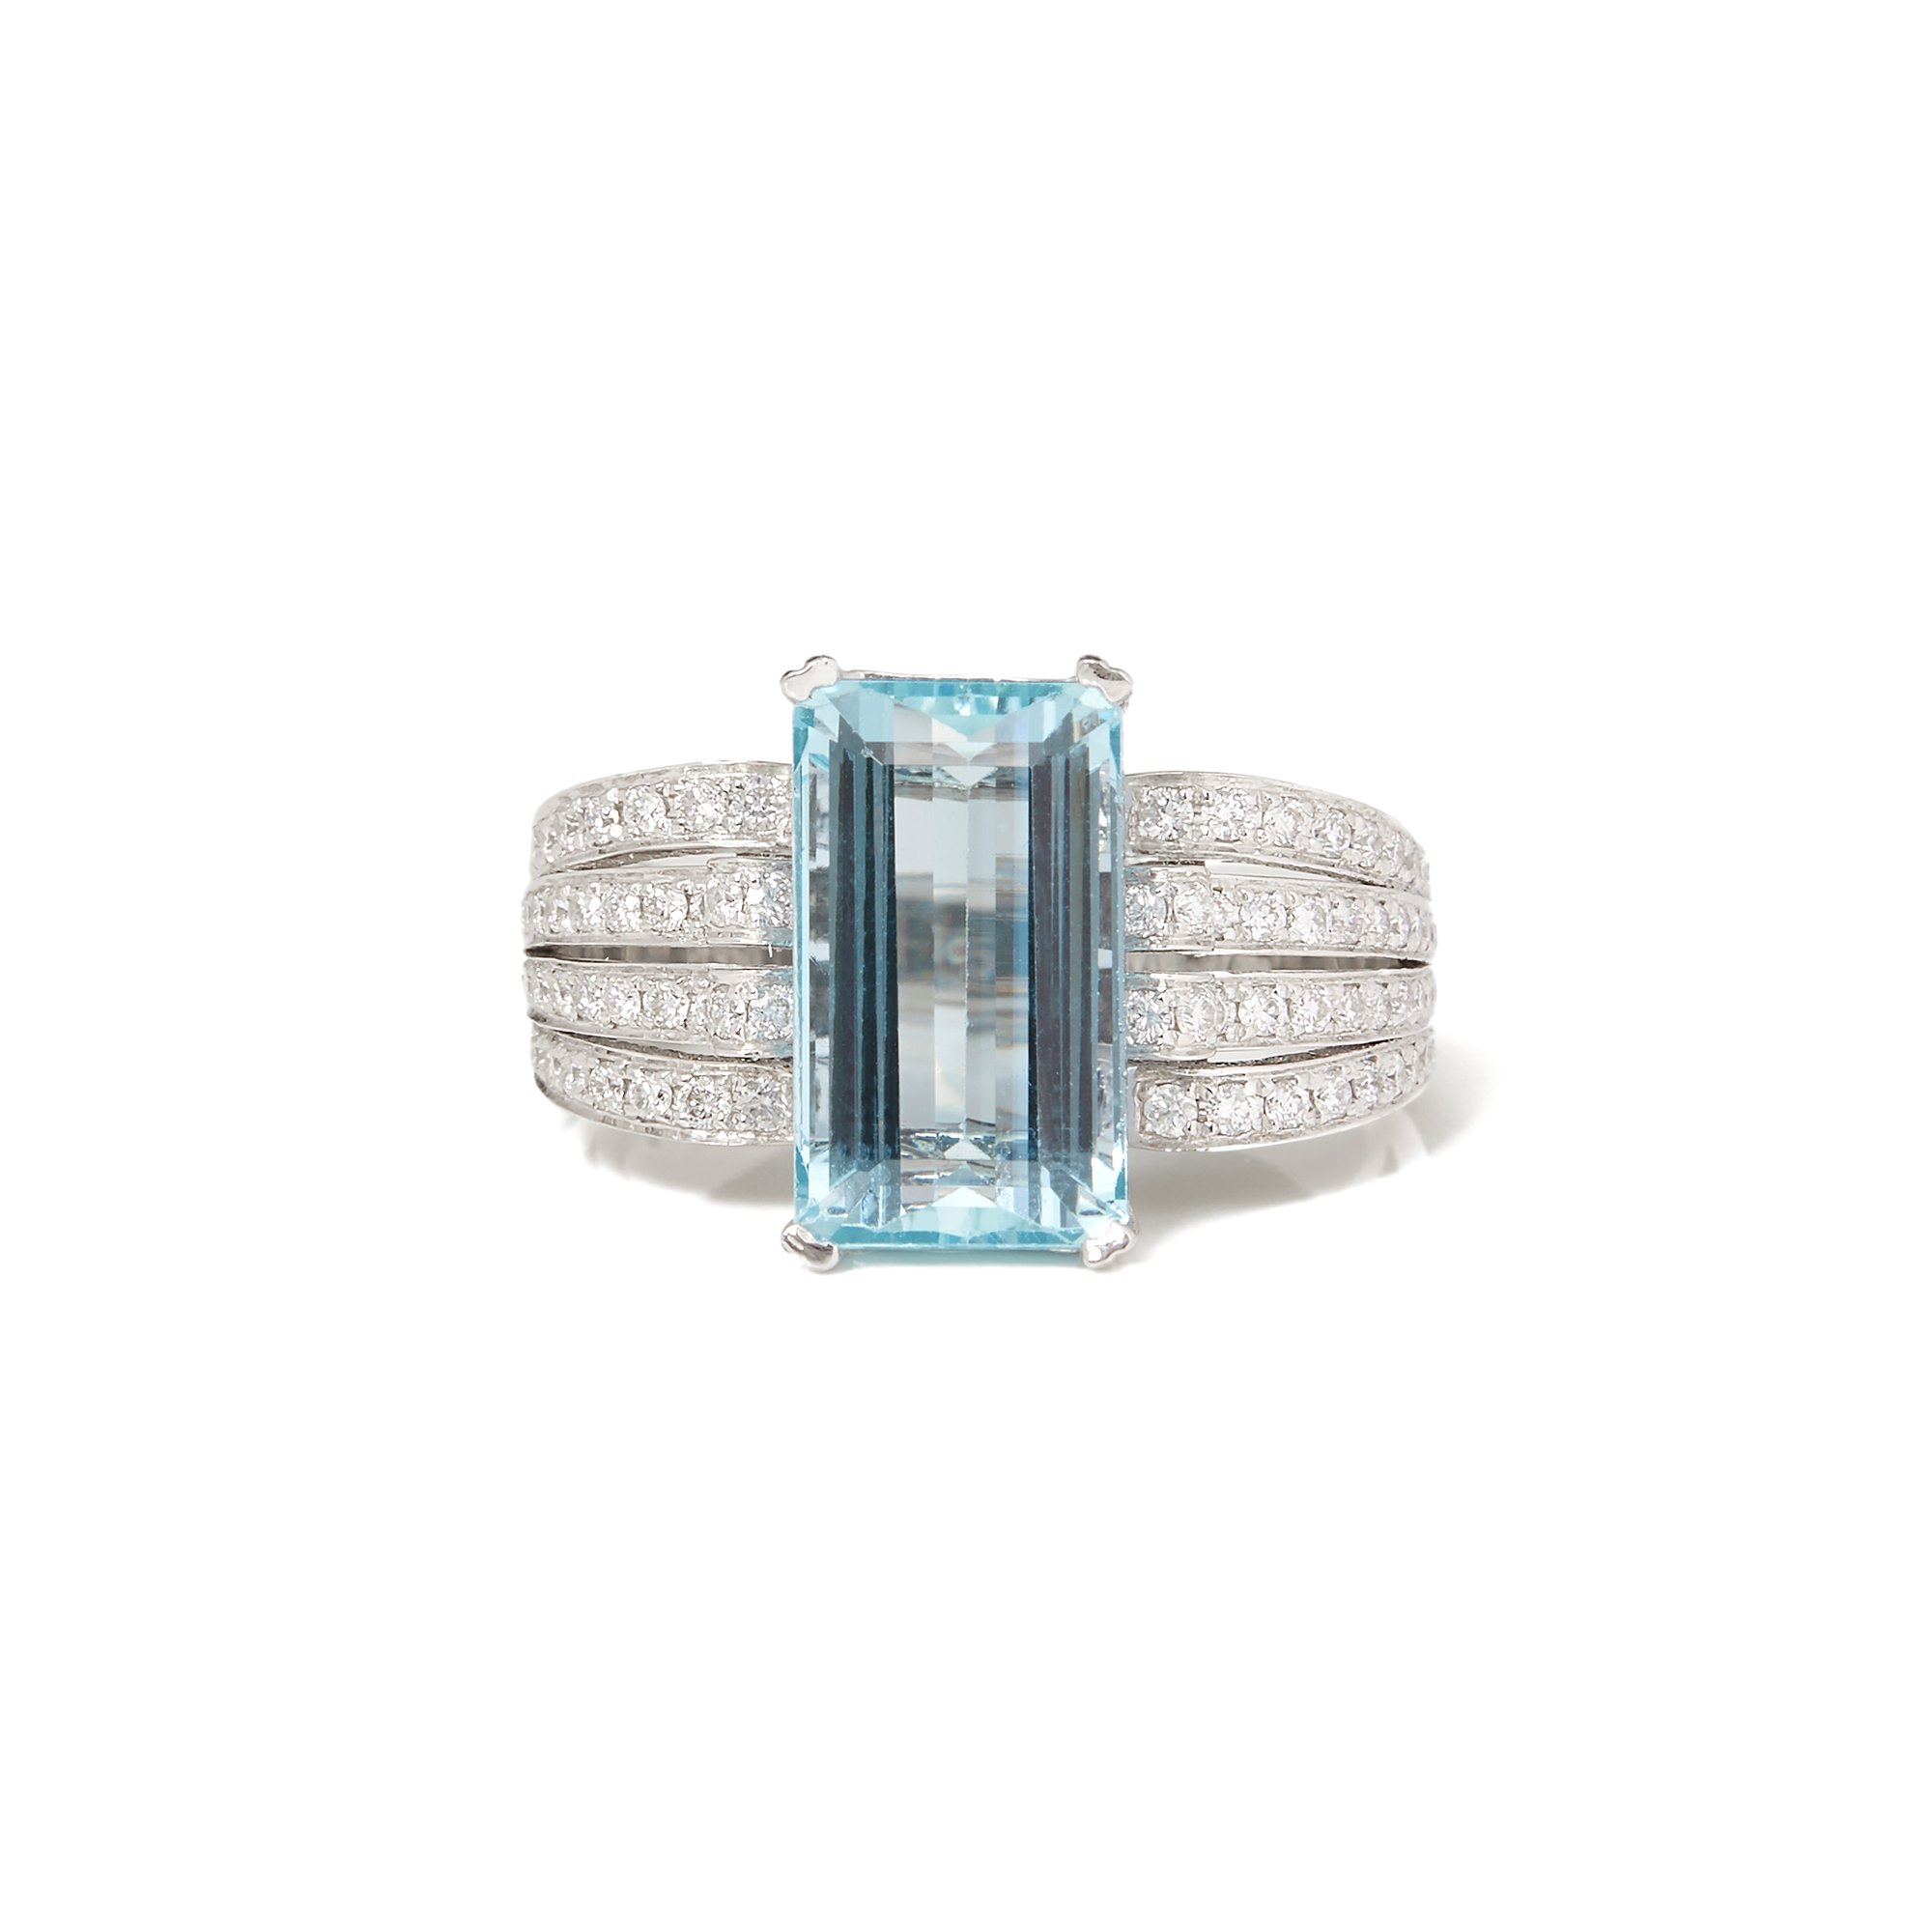 David Jerome Certified 4.58ct Emerald Cut Brazilian Aquamarine and Diamond Ring